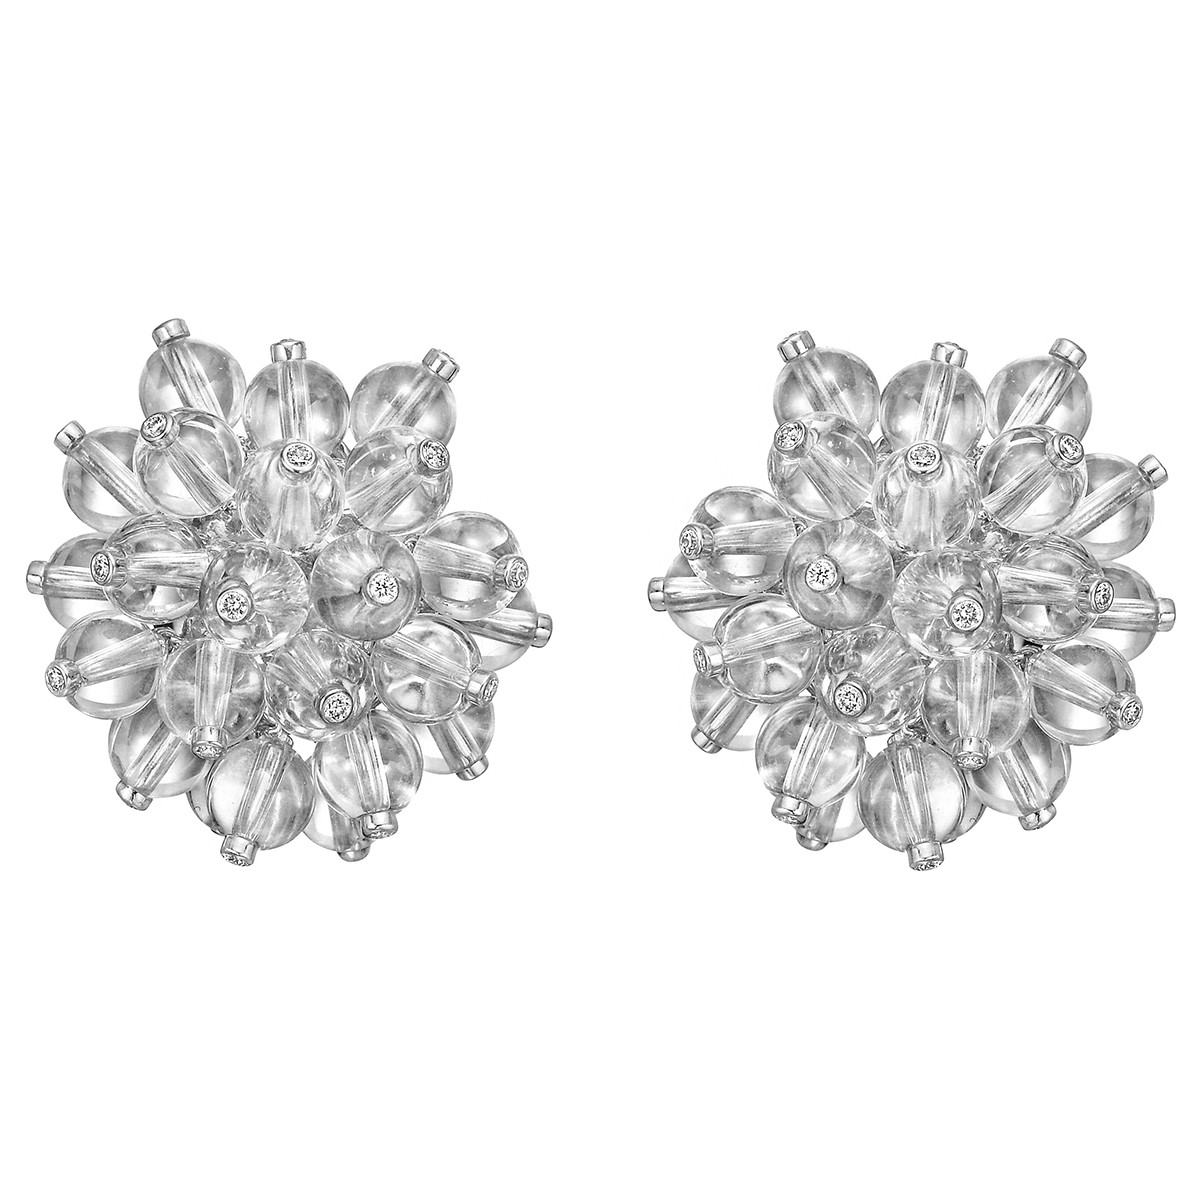 Rock Crystal & Diamond 'Burst' Earrings